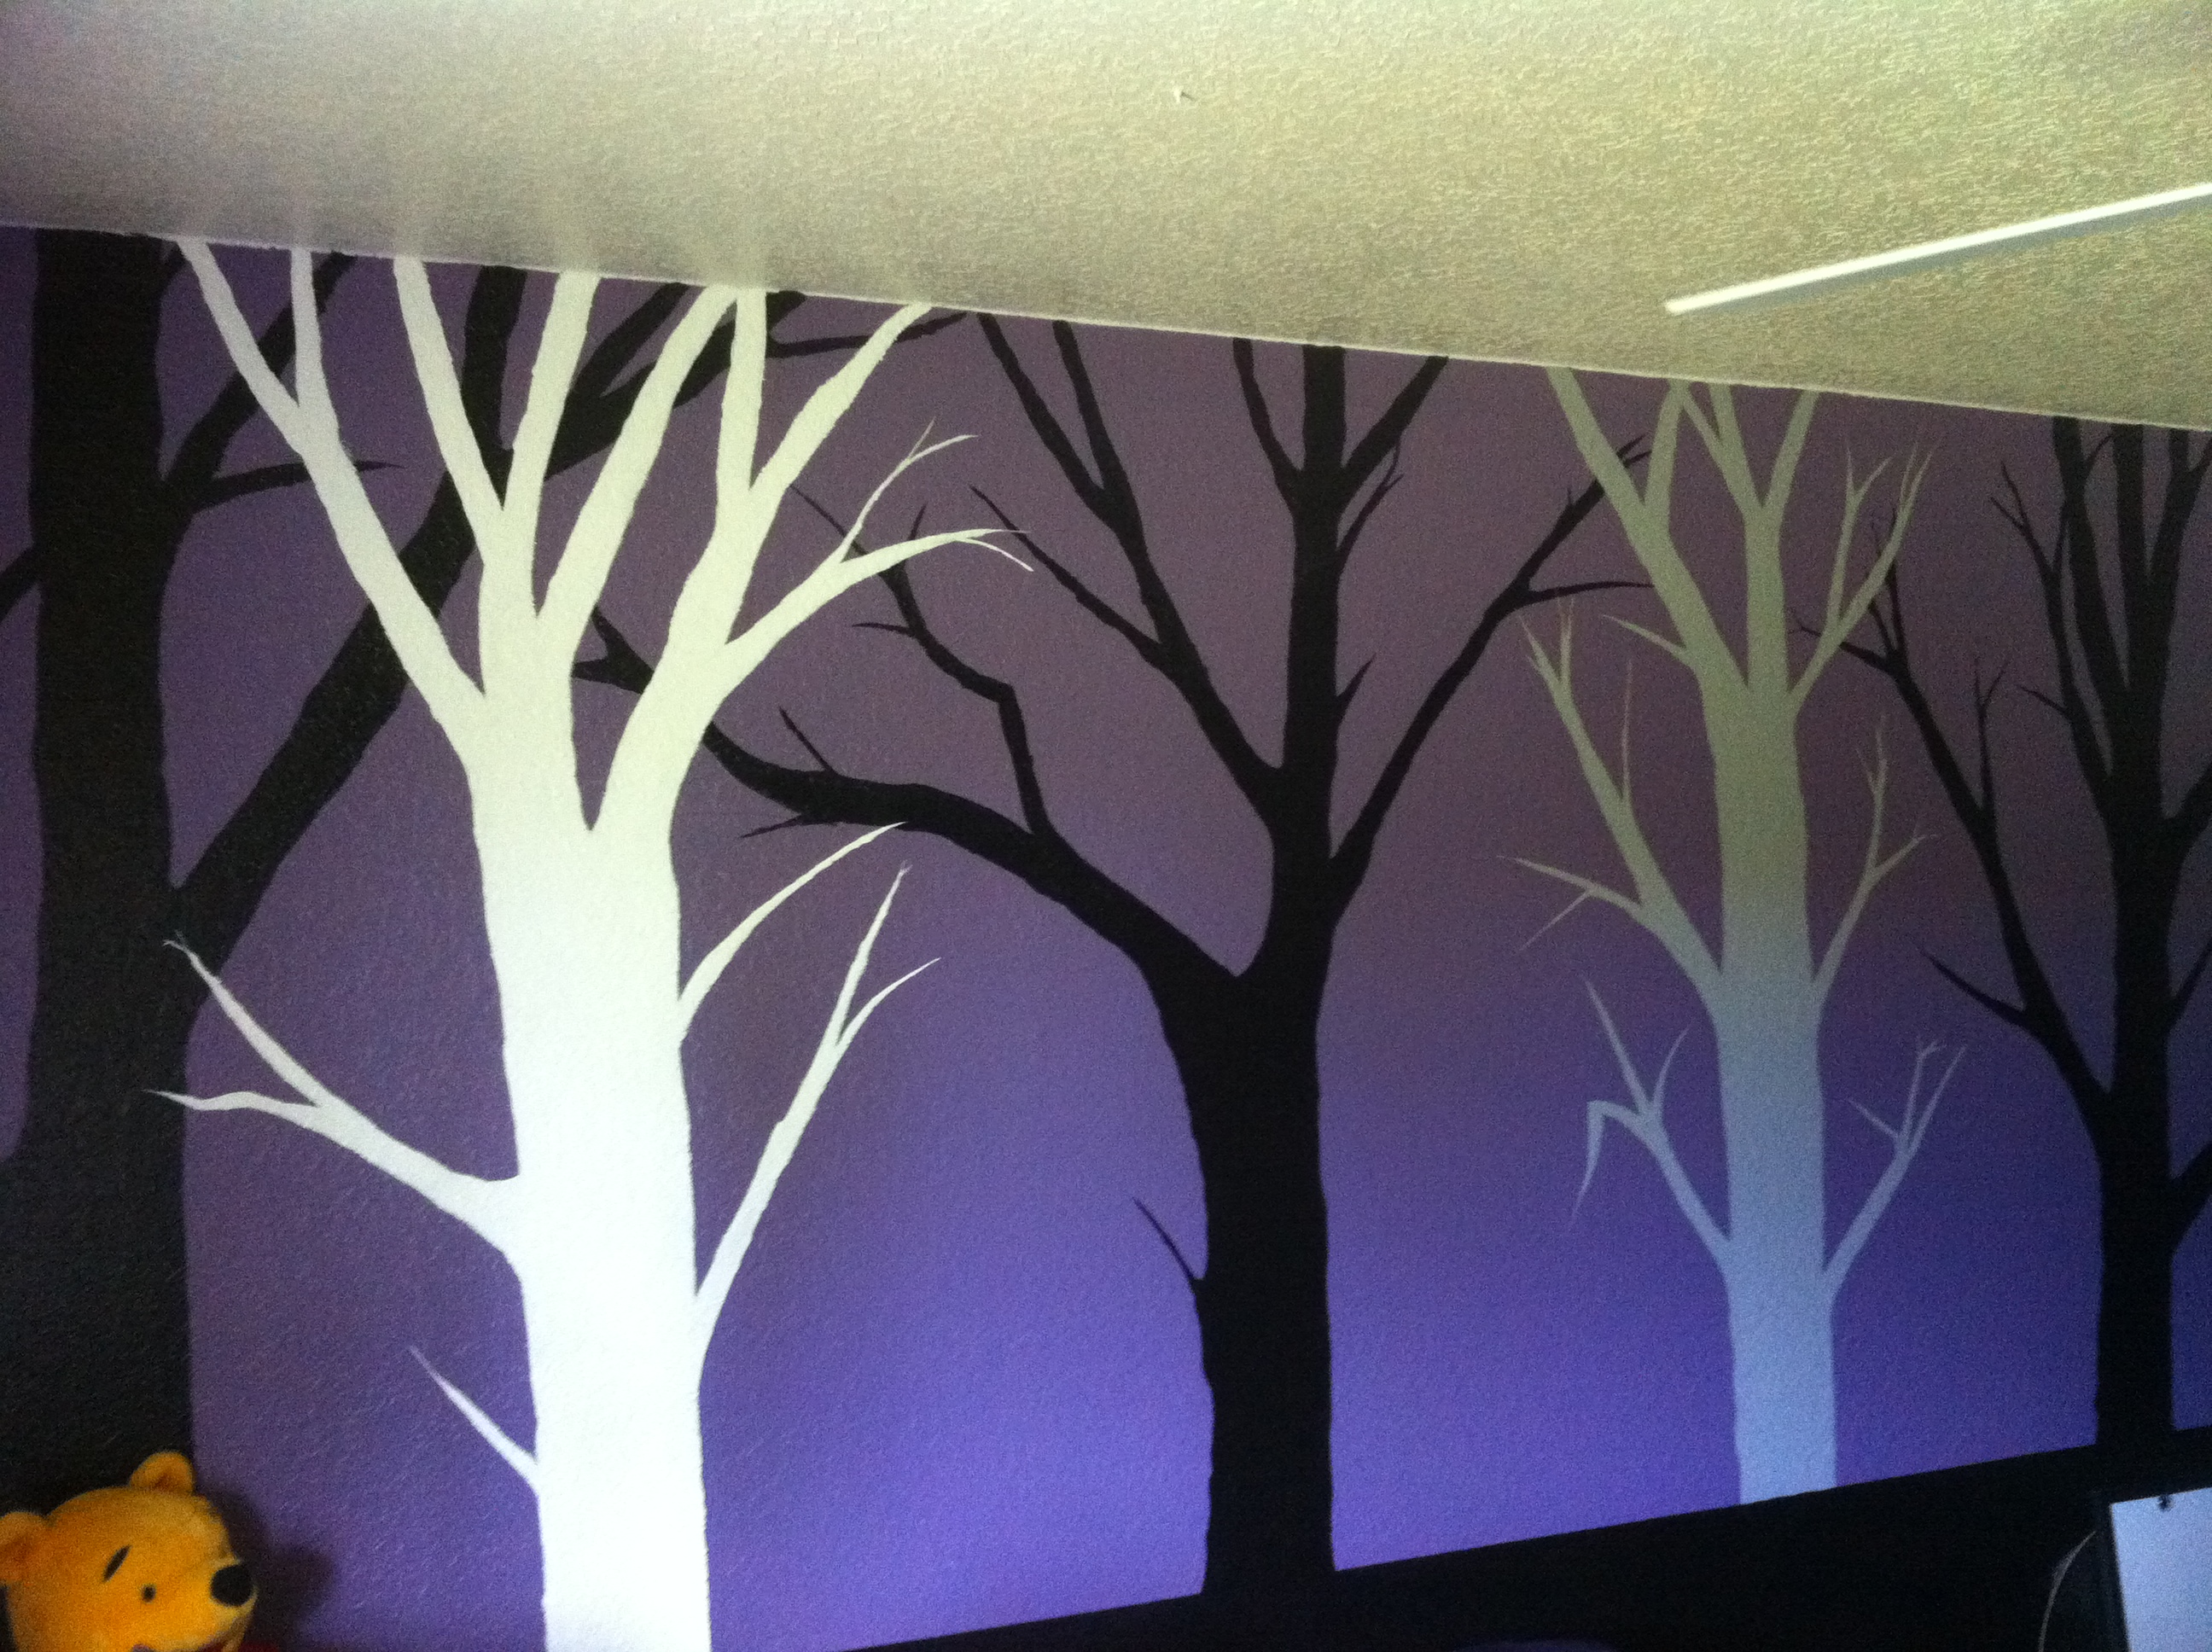 Painted Trees by my husband